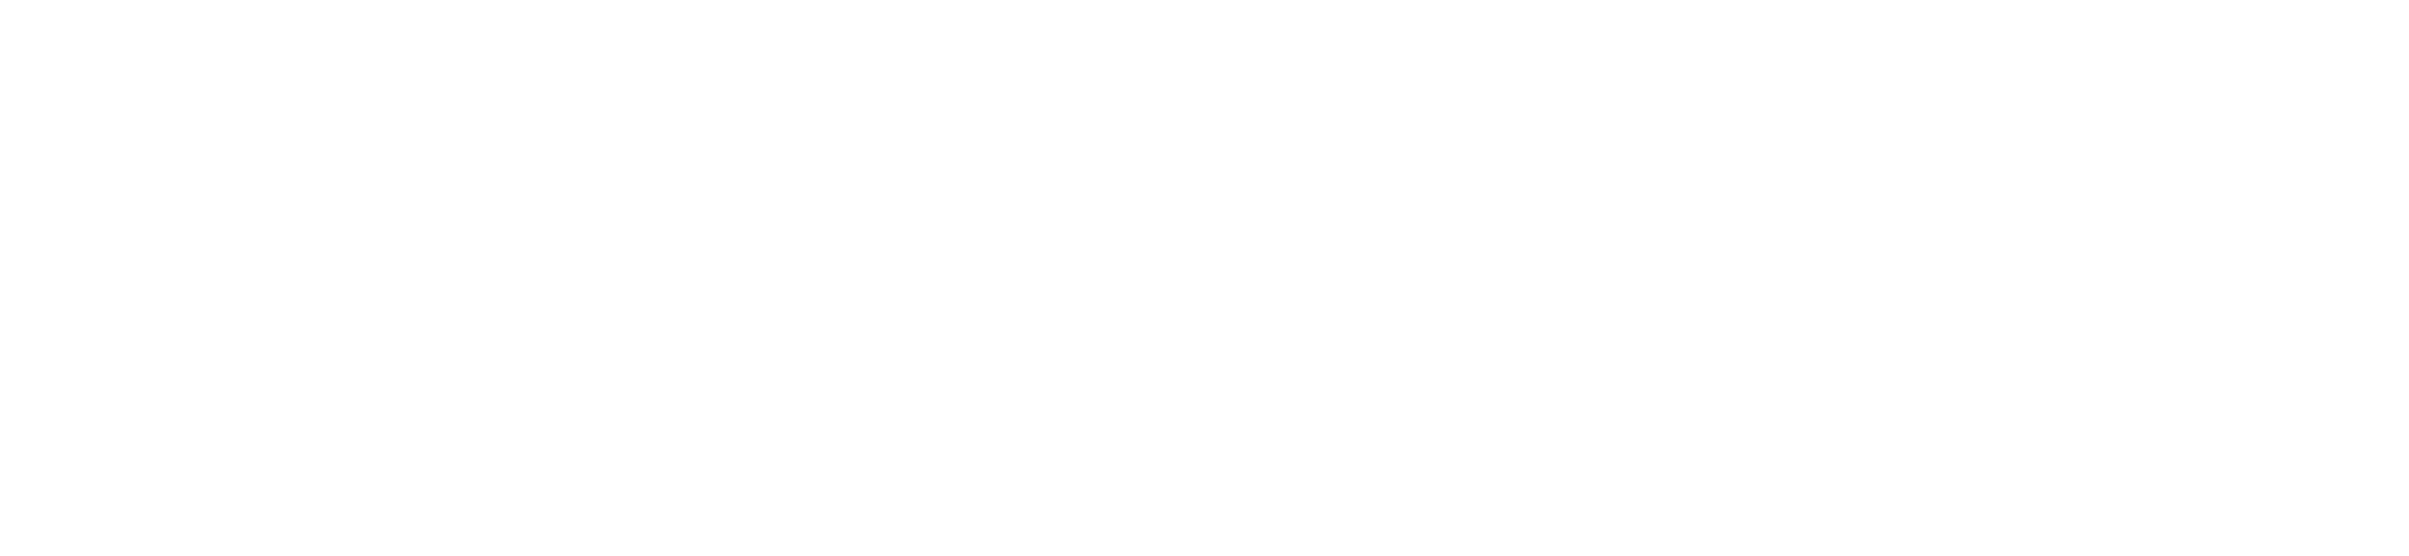 Pivot Global Partners